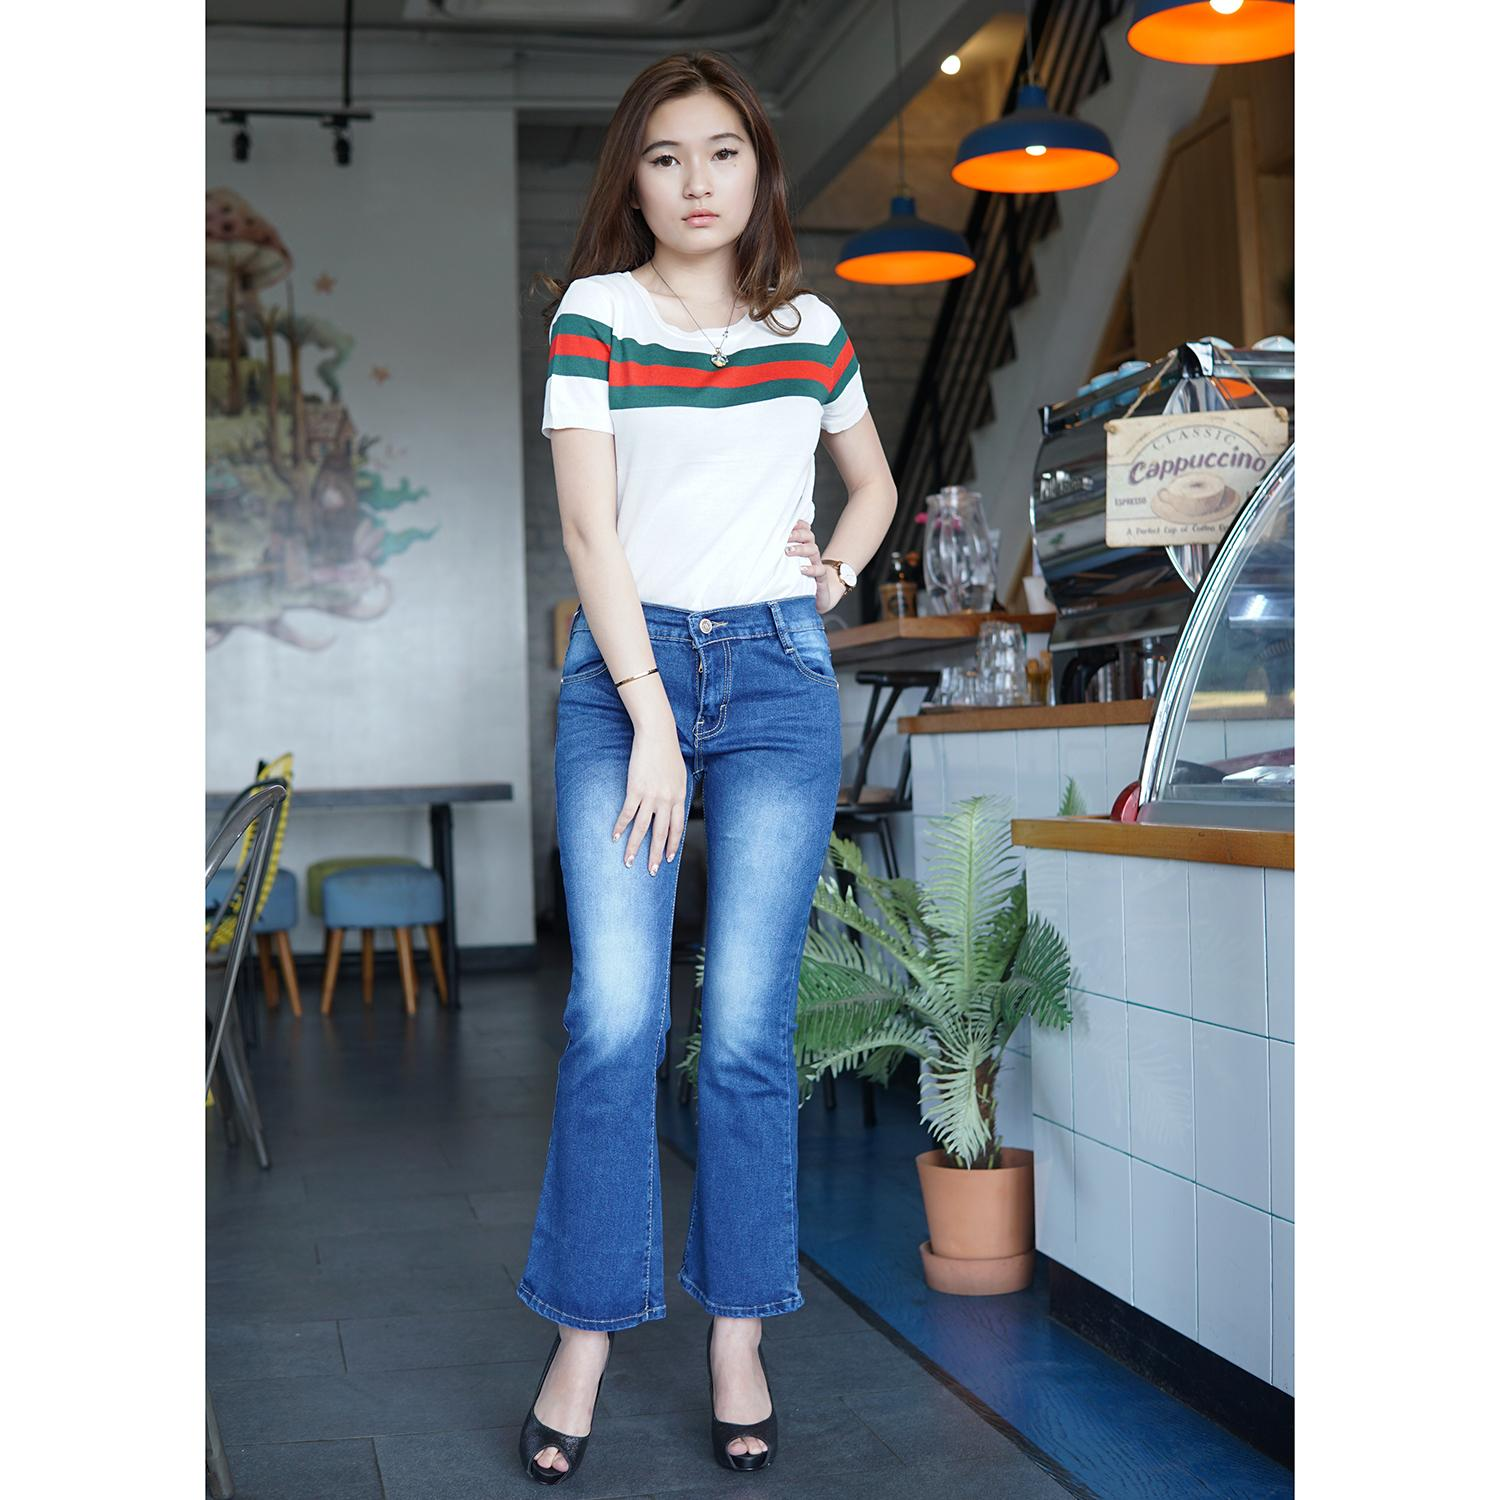 Rumah Jeans Celana Jeans Cutbray Wanita Cutbray Jeans 6187 Soft Jeans Stretch